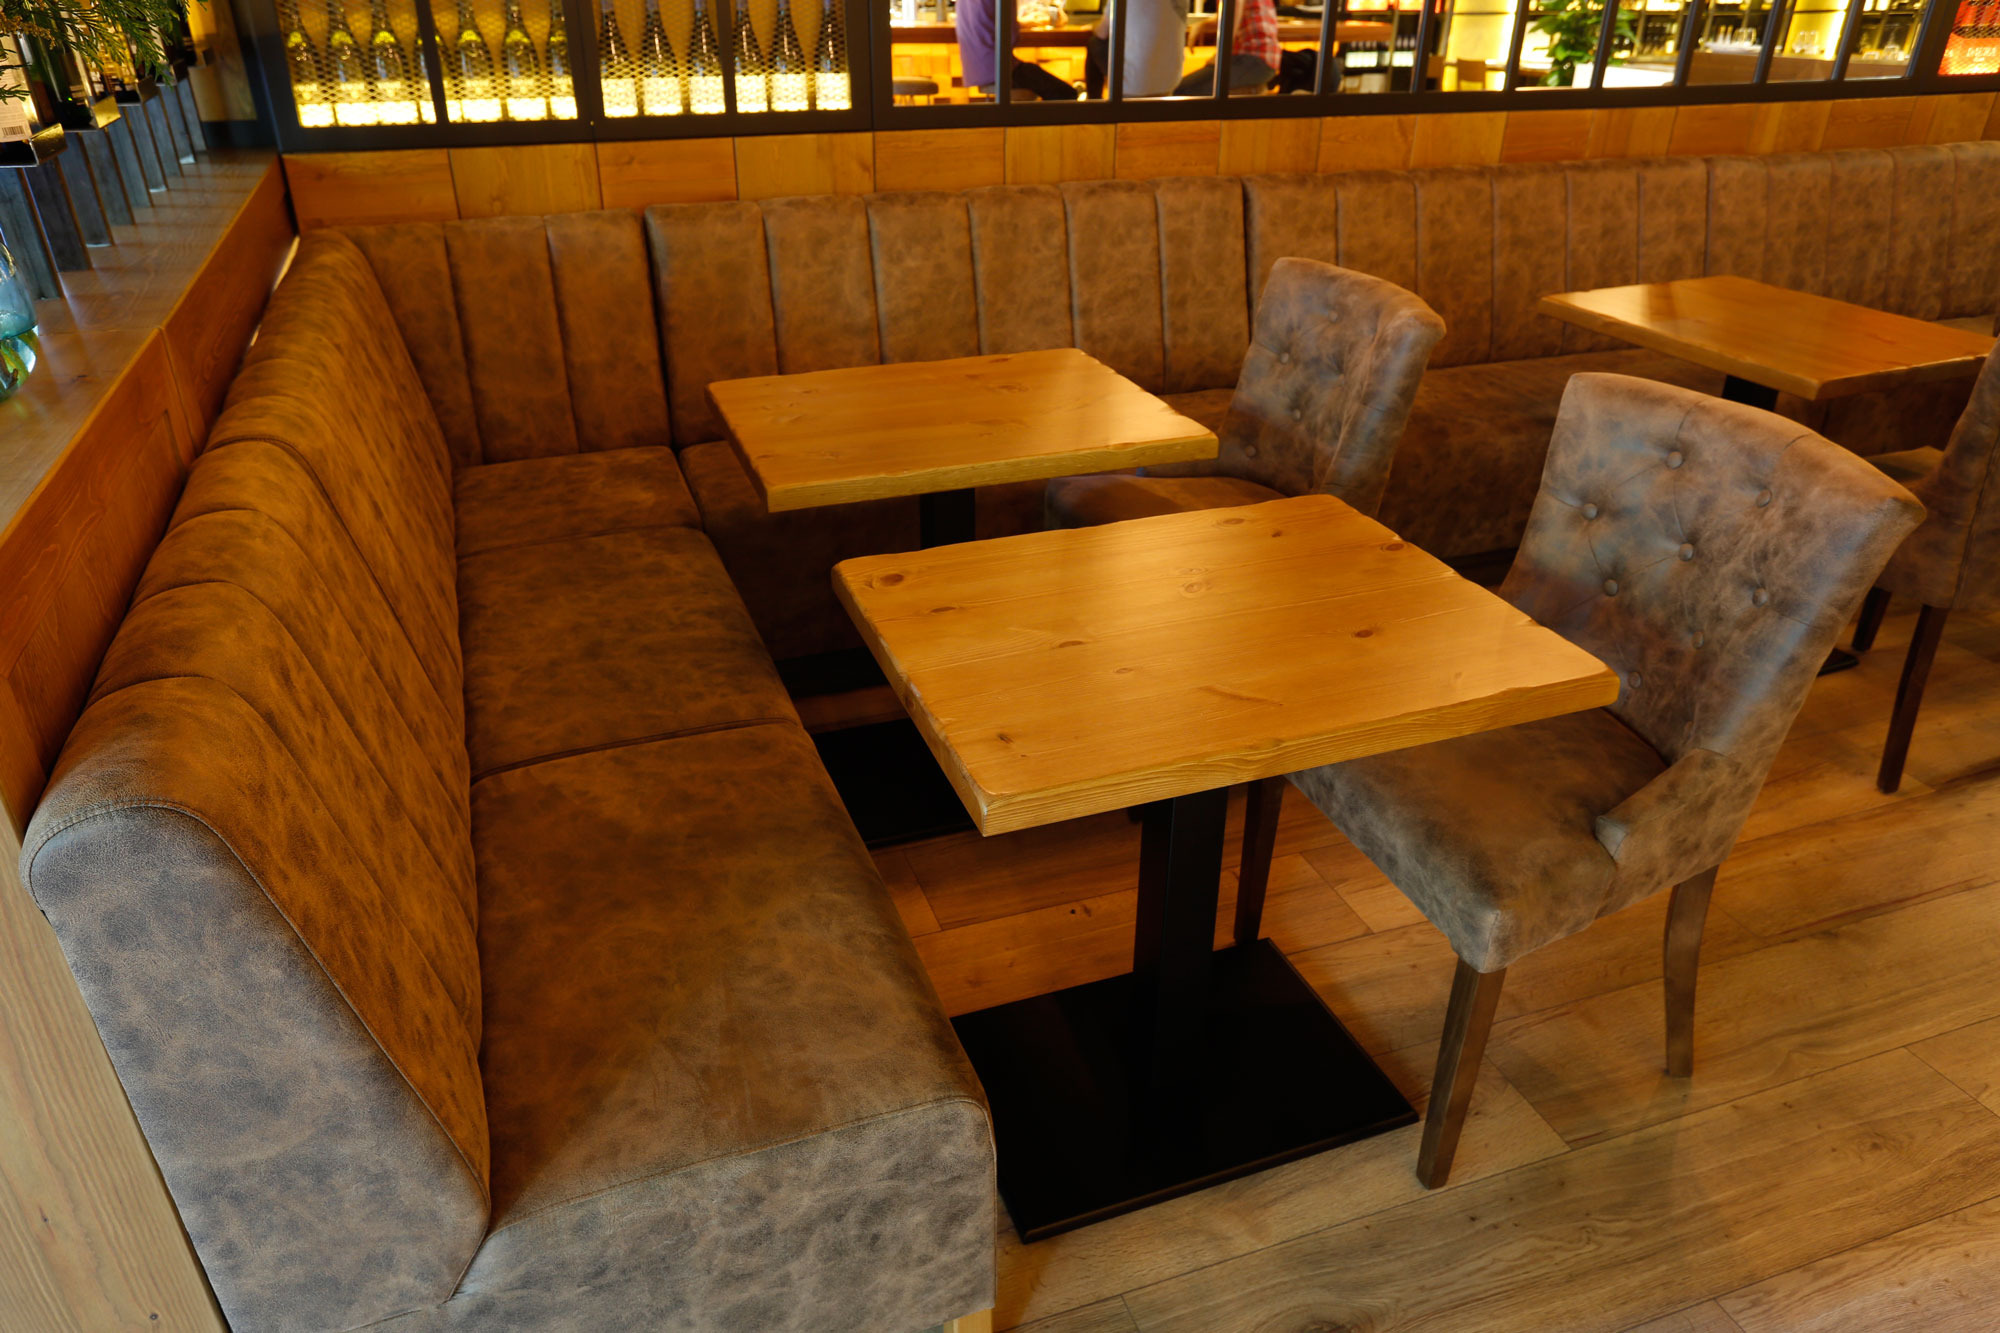 restaurant-foxos-in-barcleona.-furniture-by-Verges